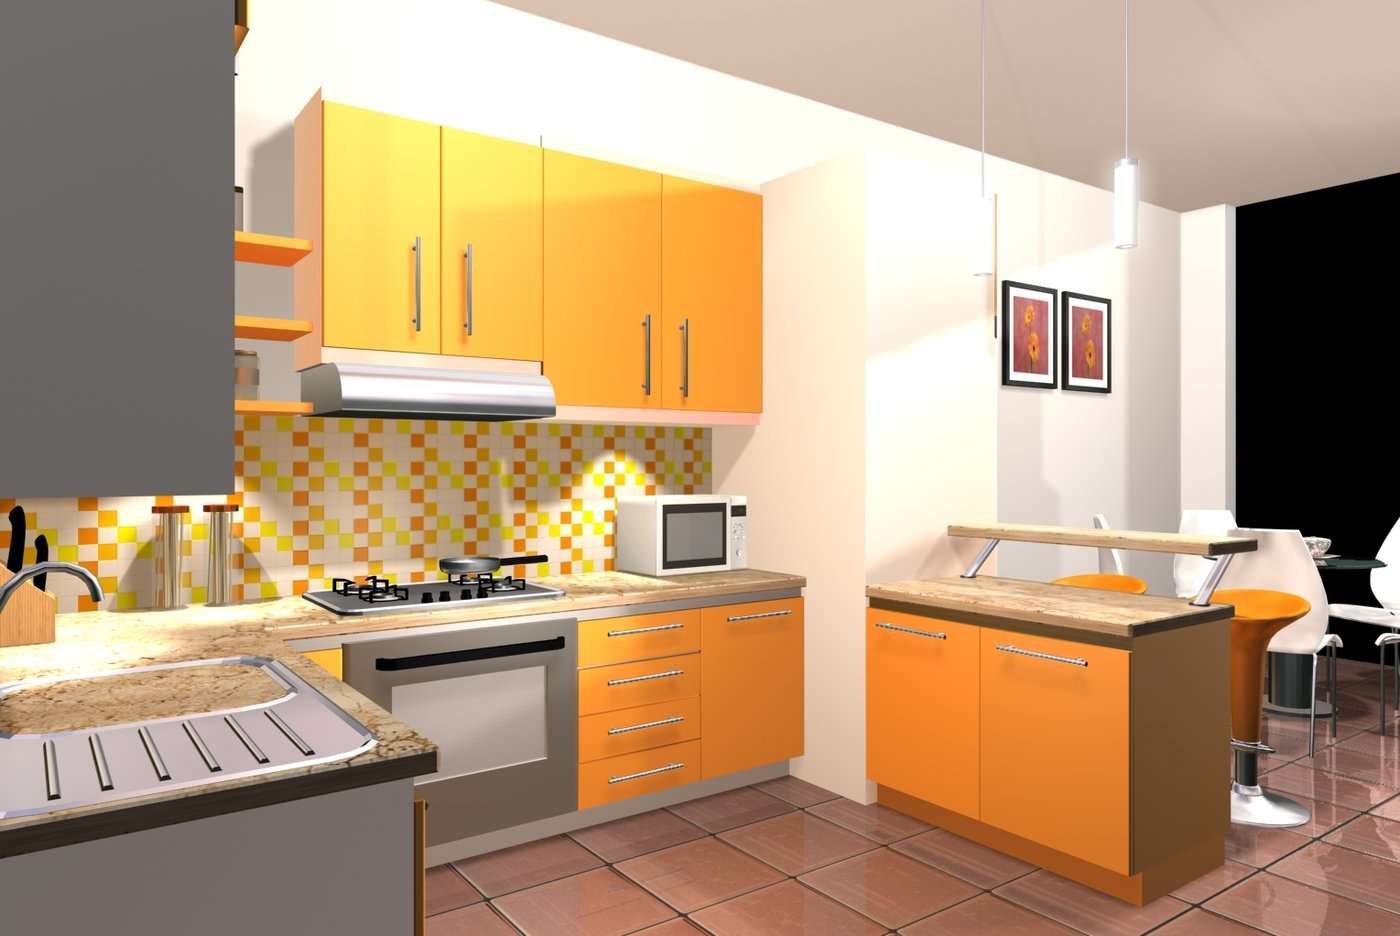 Yellowk 02 A Small Kitchen Put Yellow As Main Color So Tasty